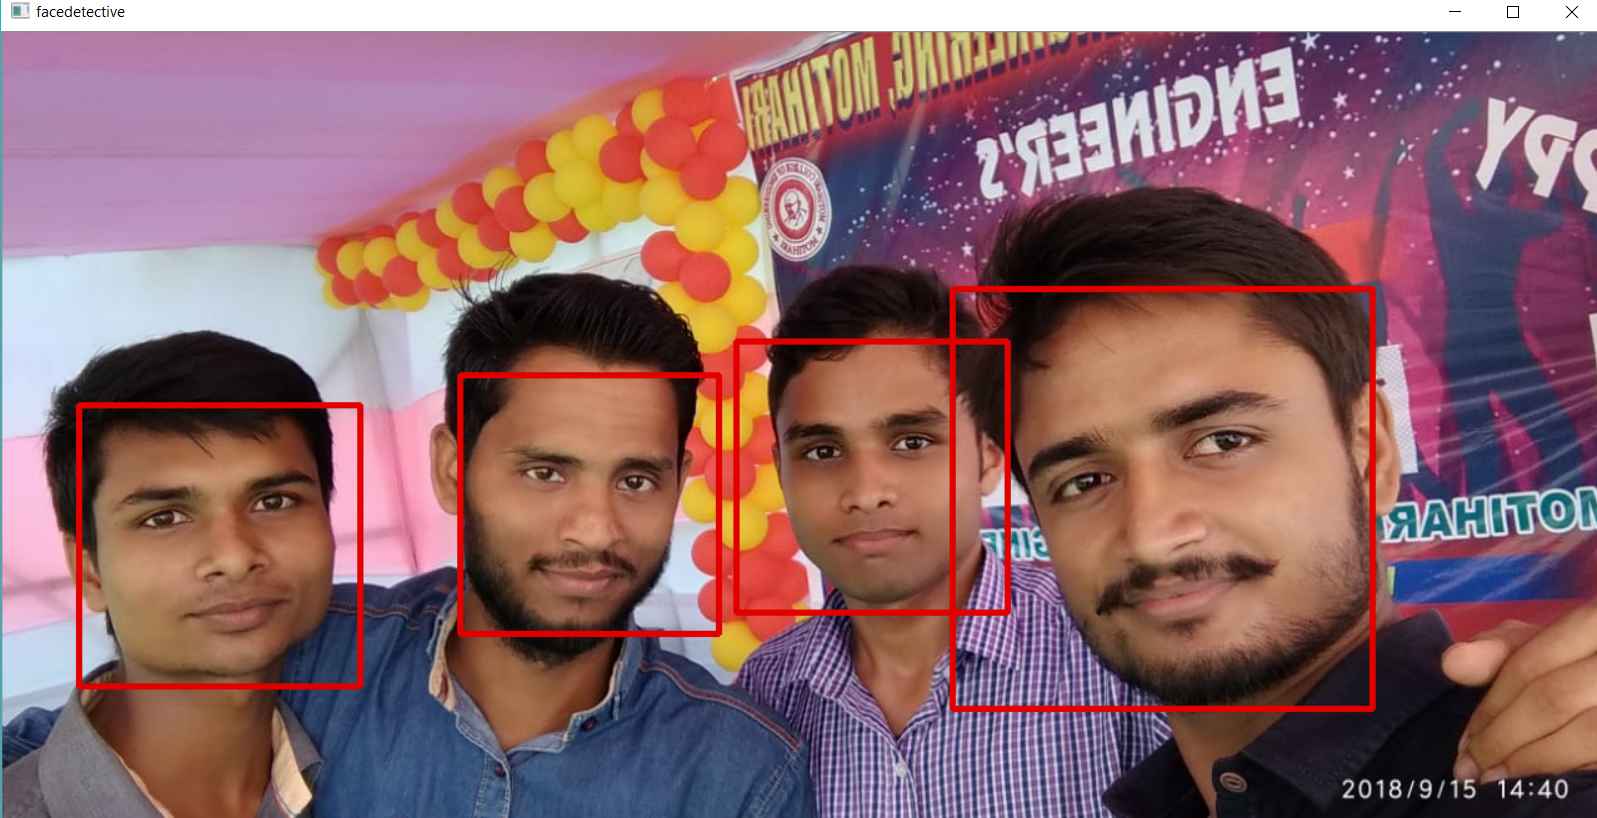 detect number of faces in an image using OpenCV Python